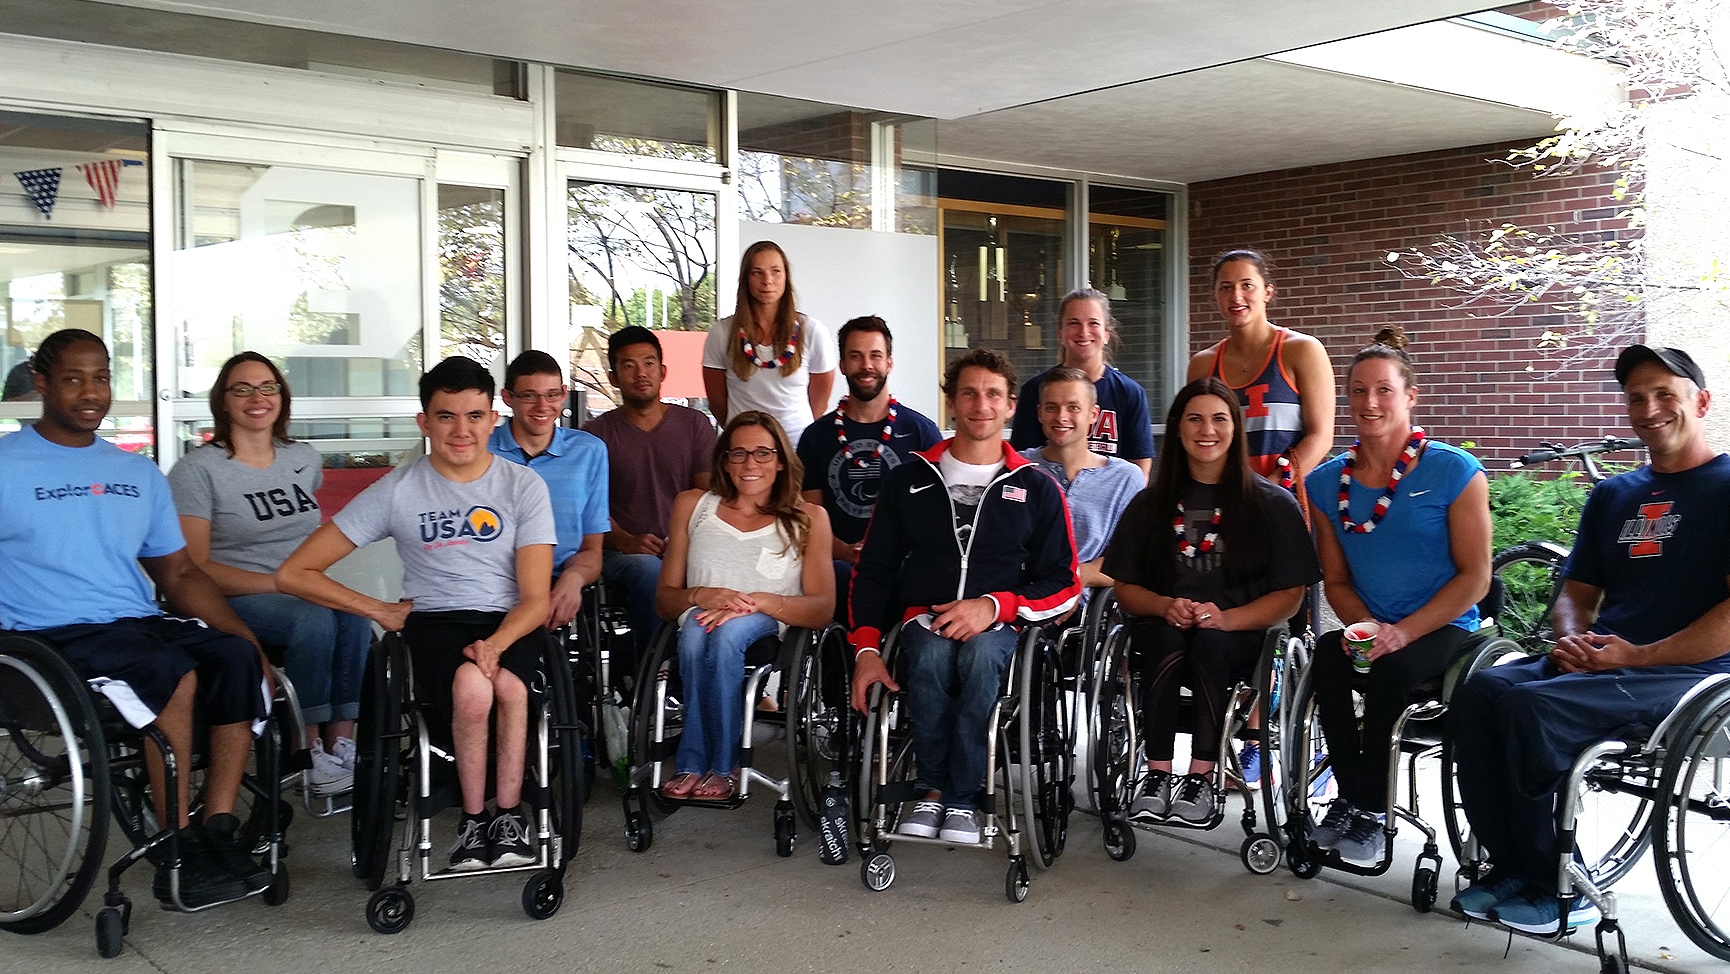 Illini athletes and coaches, pictured here at a send-off celebration, will be heading to Rio de Janeiro, Brazil, at the end of August to compete in the 2016 Paralympics.